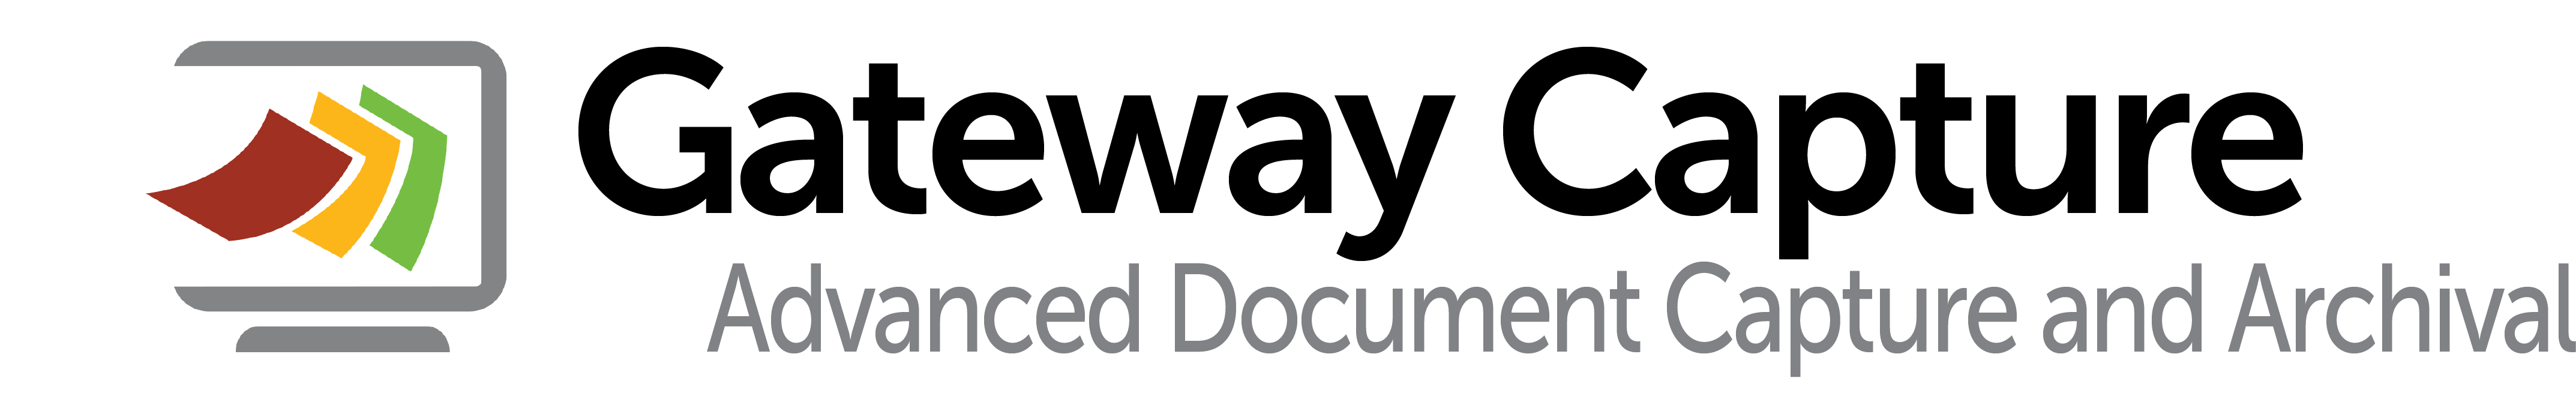 Gateway Capture Logo Pre Vector 2017